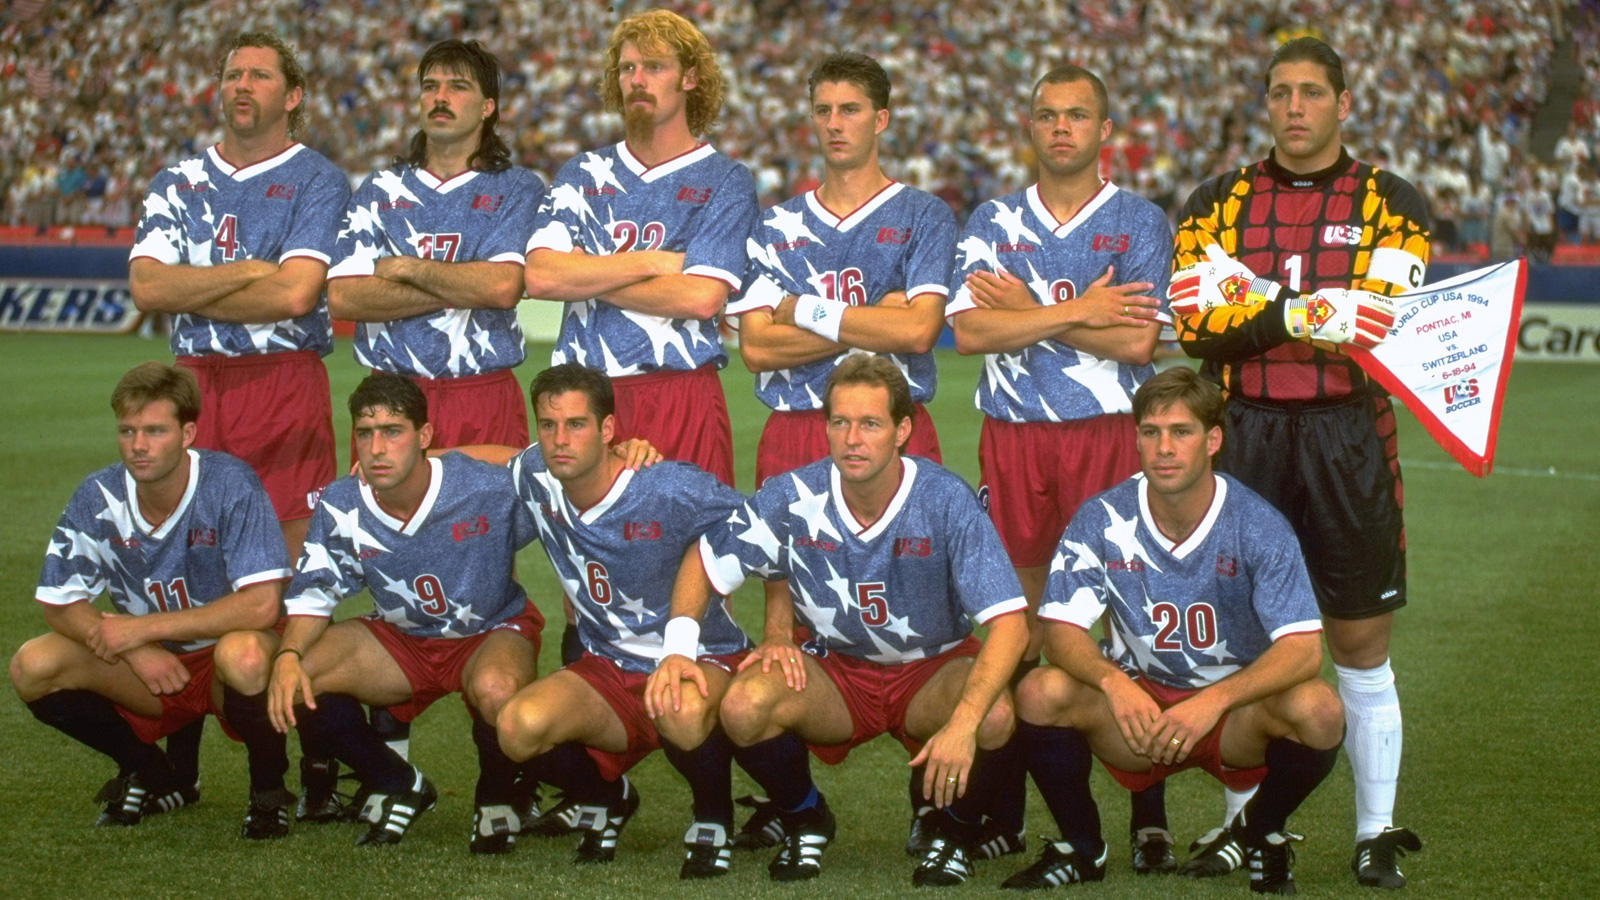 The USA starting lineup vs. Switzerland: (L-R Top) Cle Kooiman (4), Marcelo Balboa (17), Alexi Lalas (22), Mike Sorber (16), Earnie Stewart (8) and Tony Meola (1). (L-R Bottom) Eric Wynalda (11), Tab Ramos (9), John Harkes (6), Thomas Dooley (5) and Paul Caligiuri (20).